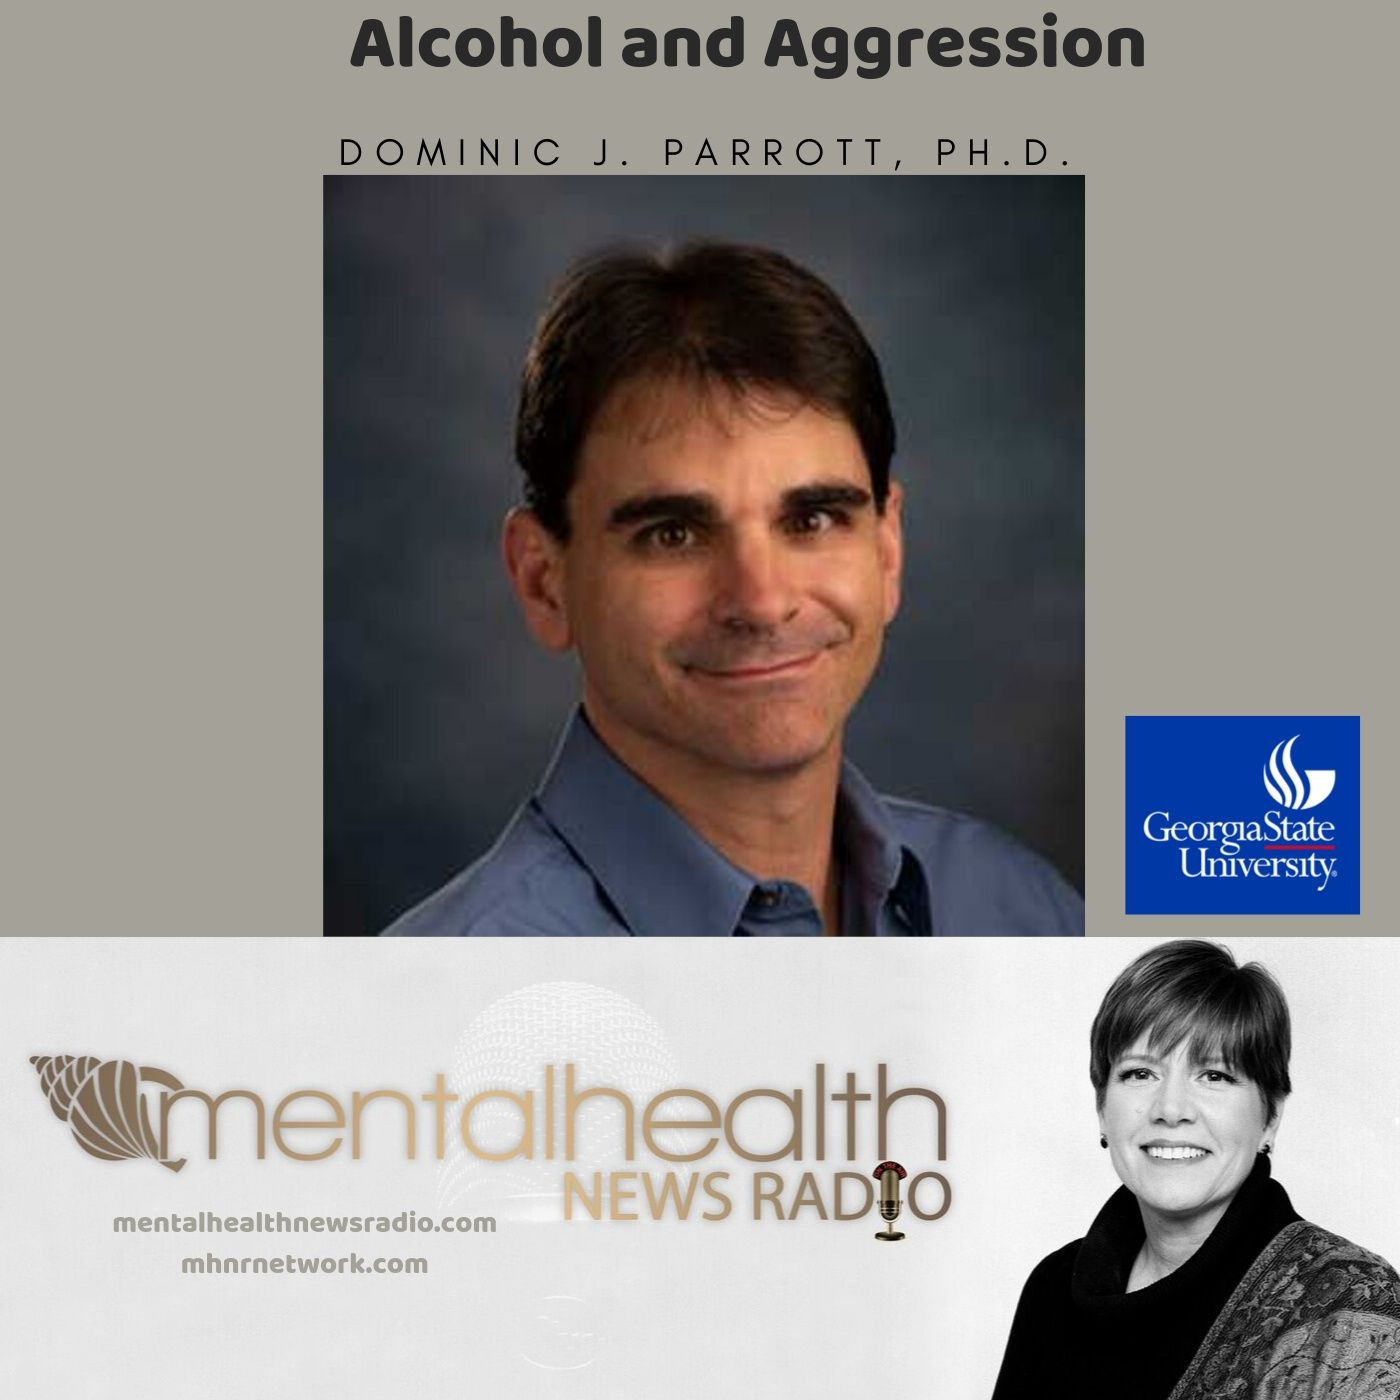 Mental Health News Radio - Alcohol and Aggression with Dr. Dominic Parrott